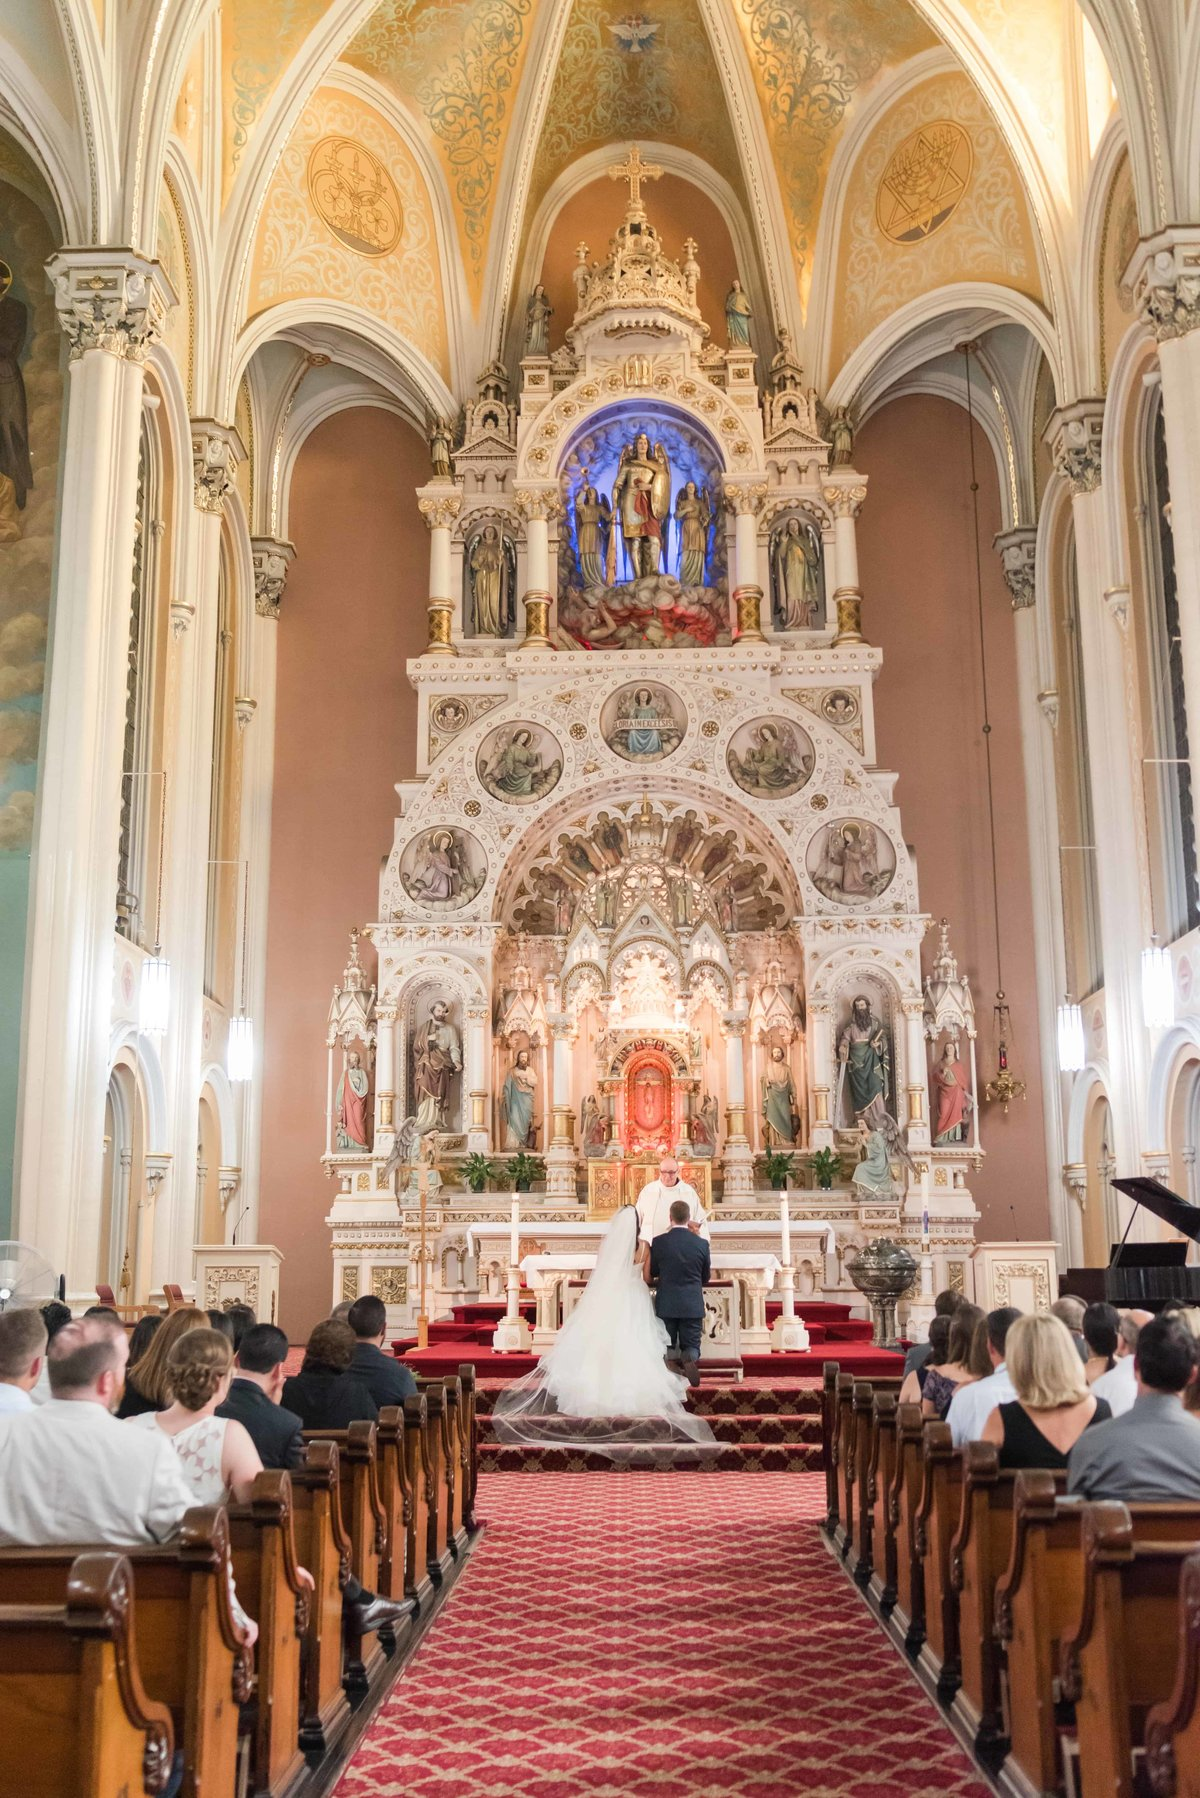 Bride and groom getting married in a catholic church